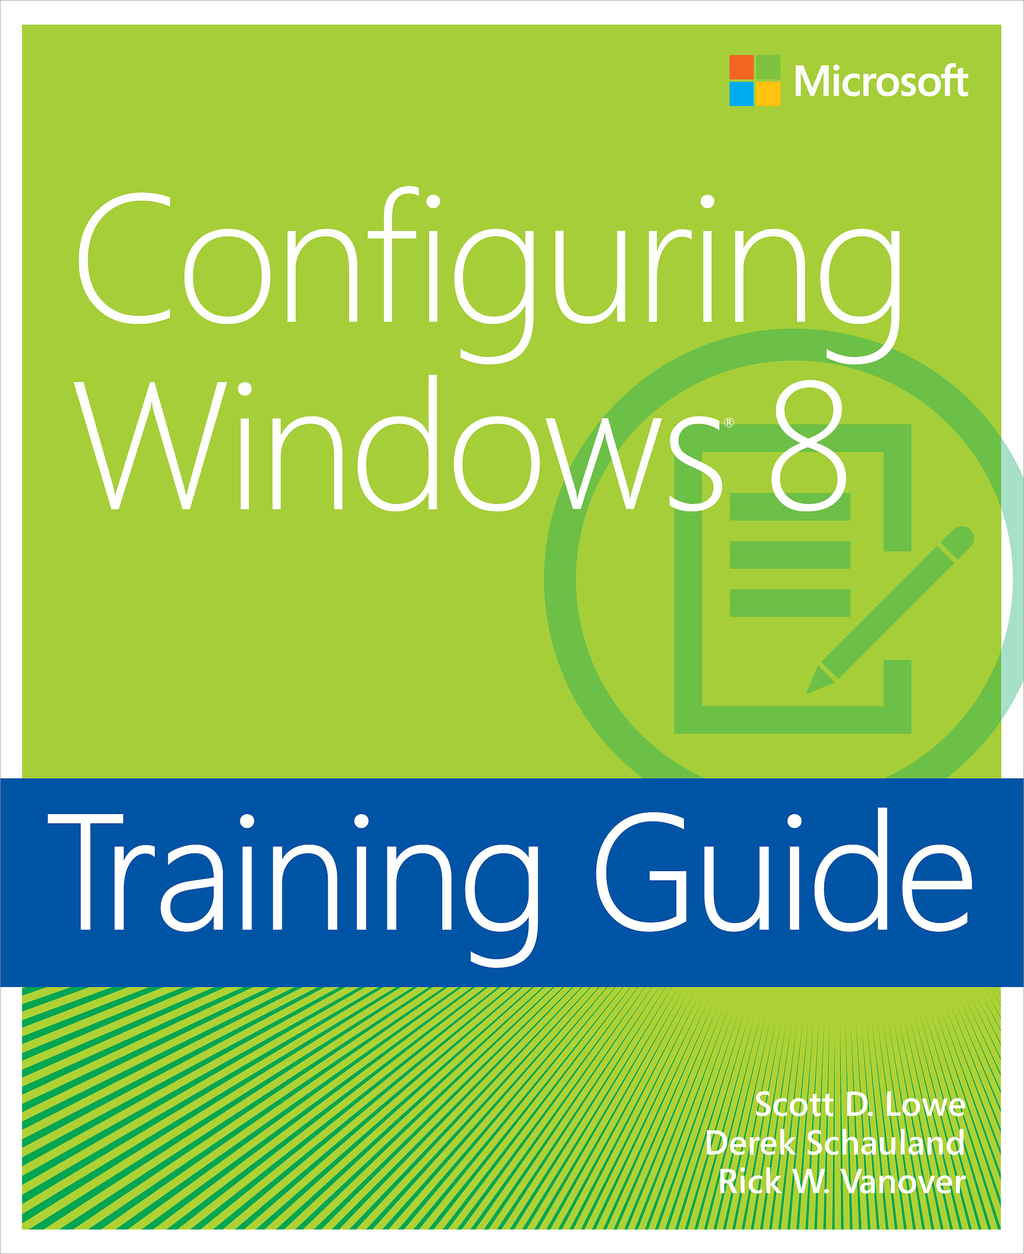 Training Guide: Configuring Windows 8